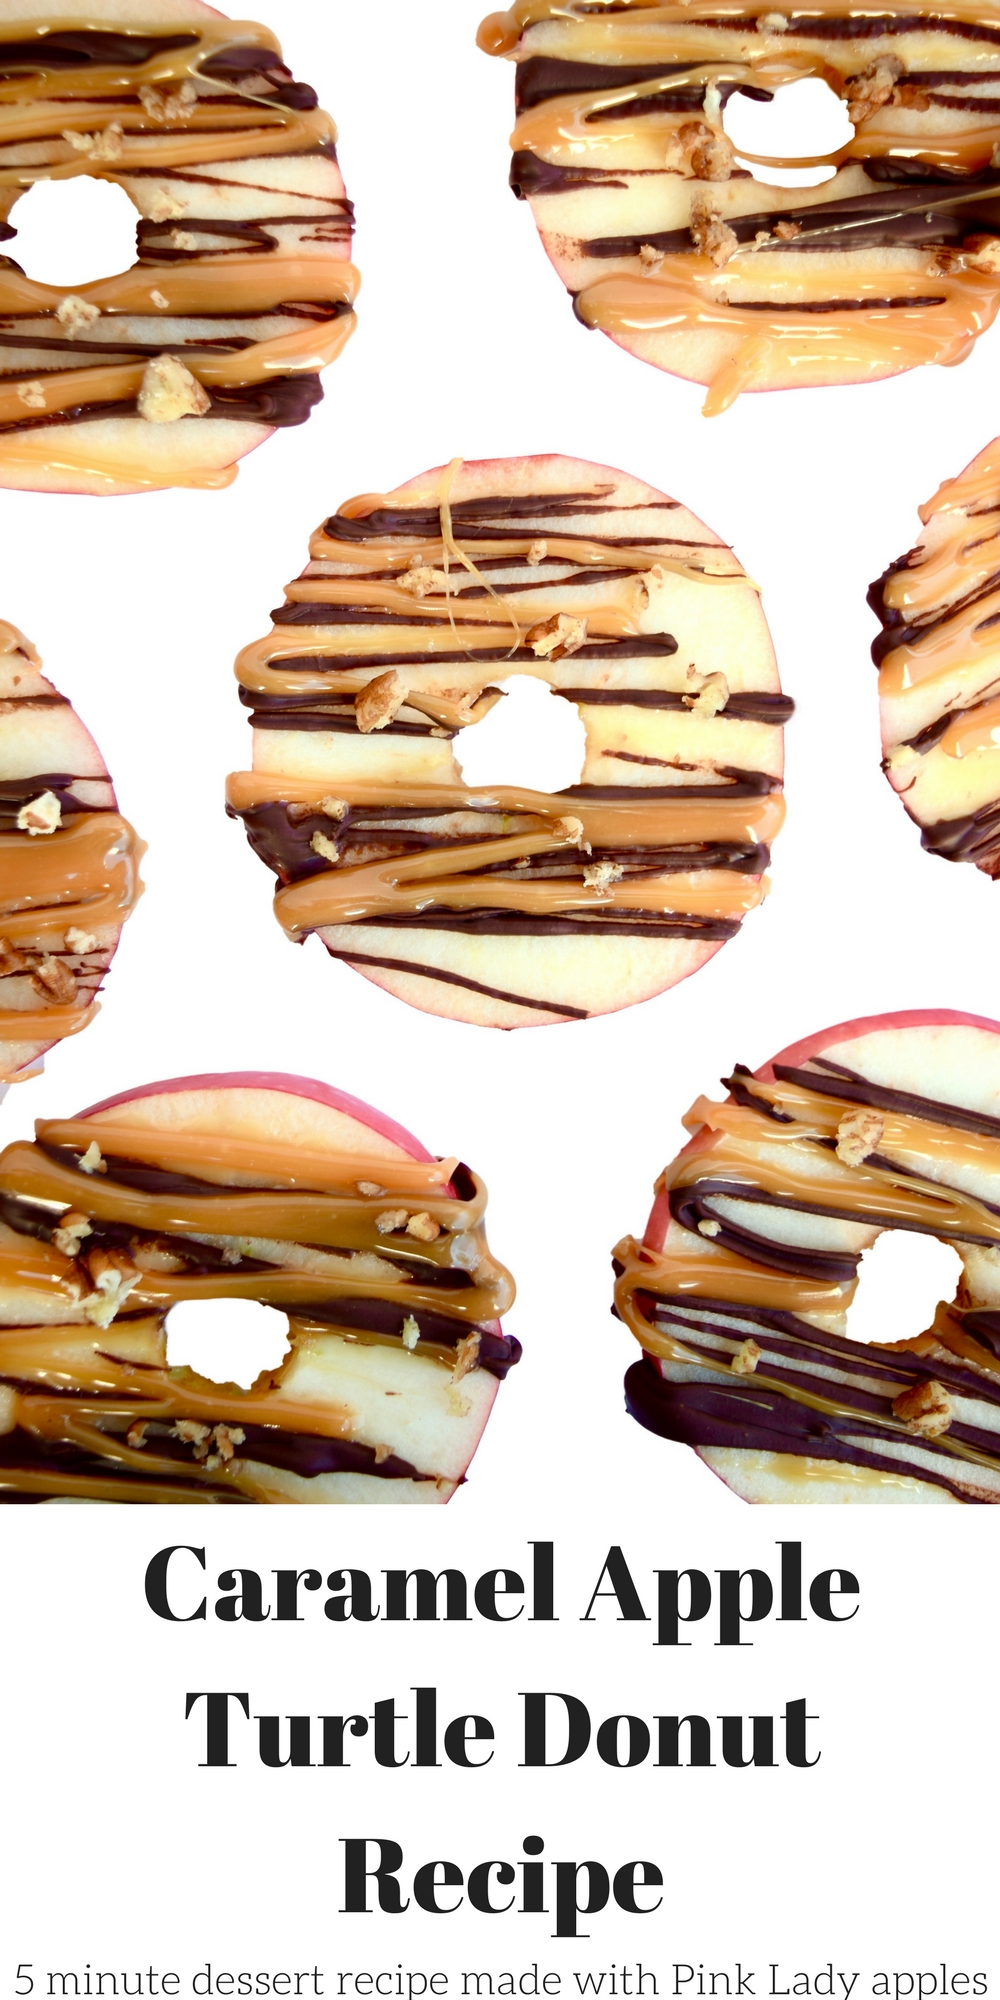 Caramel Apple Turtle Donut Recipe